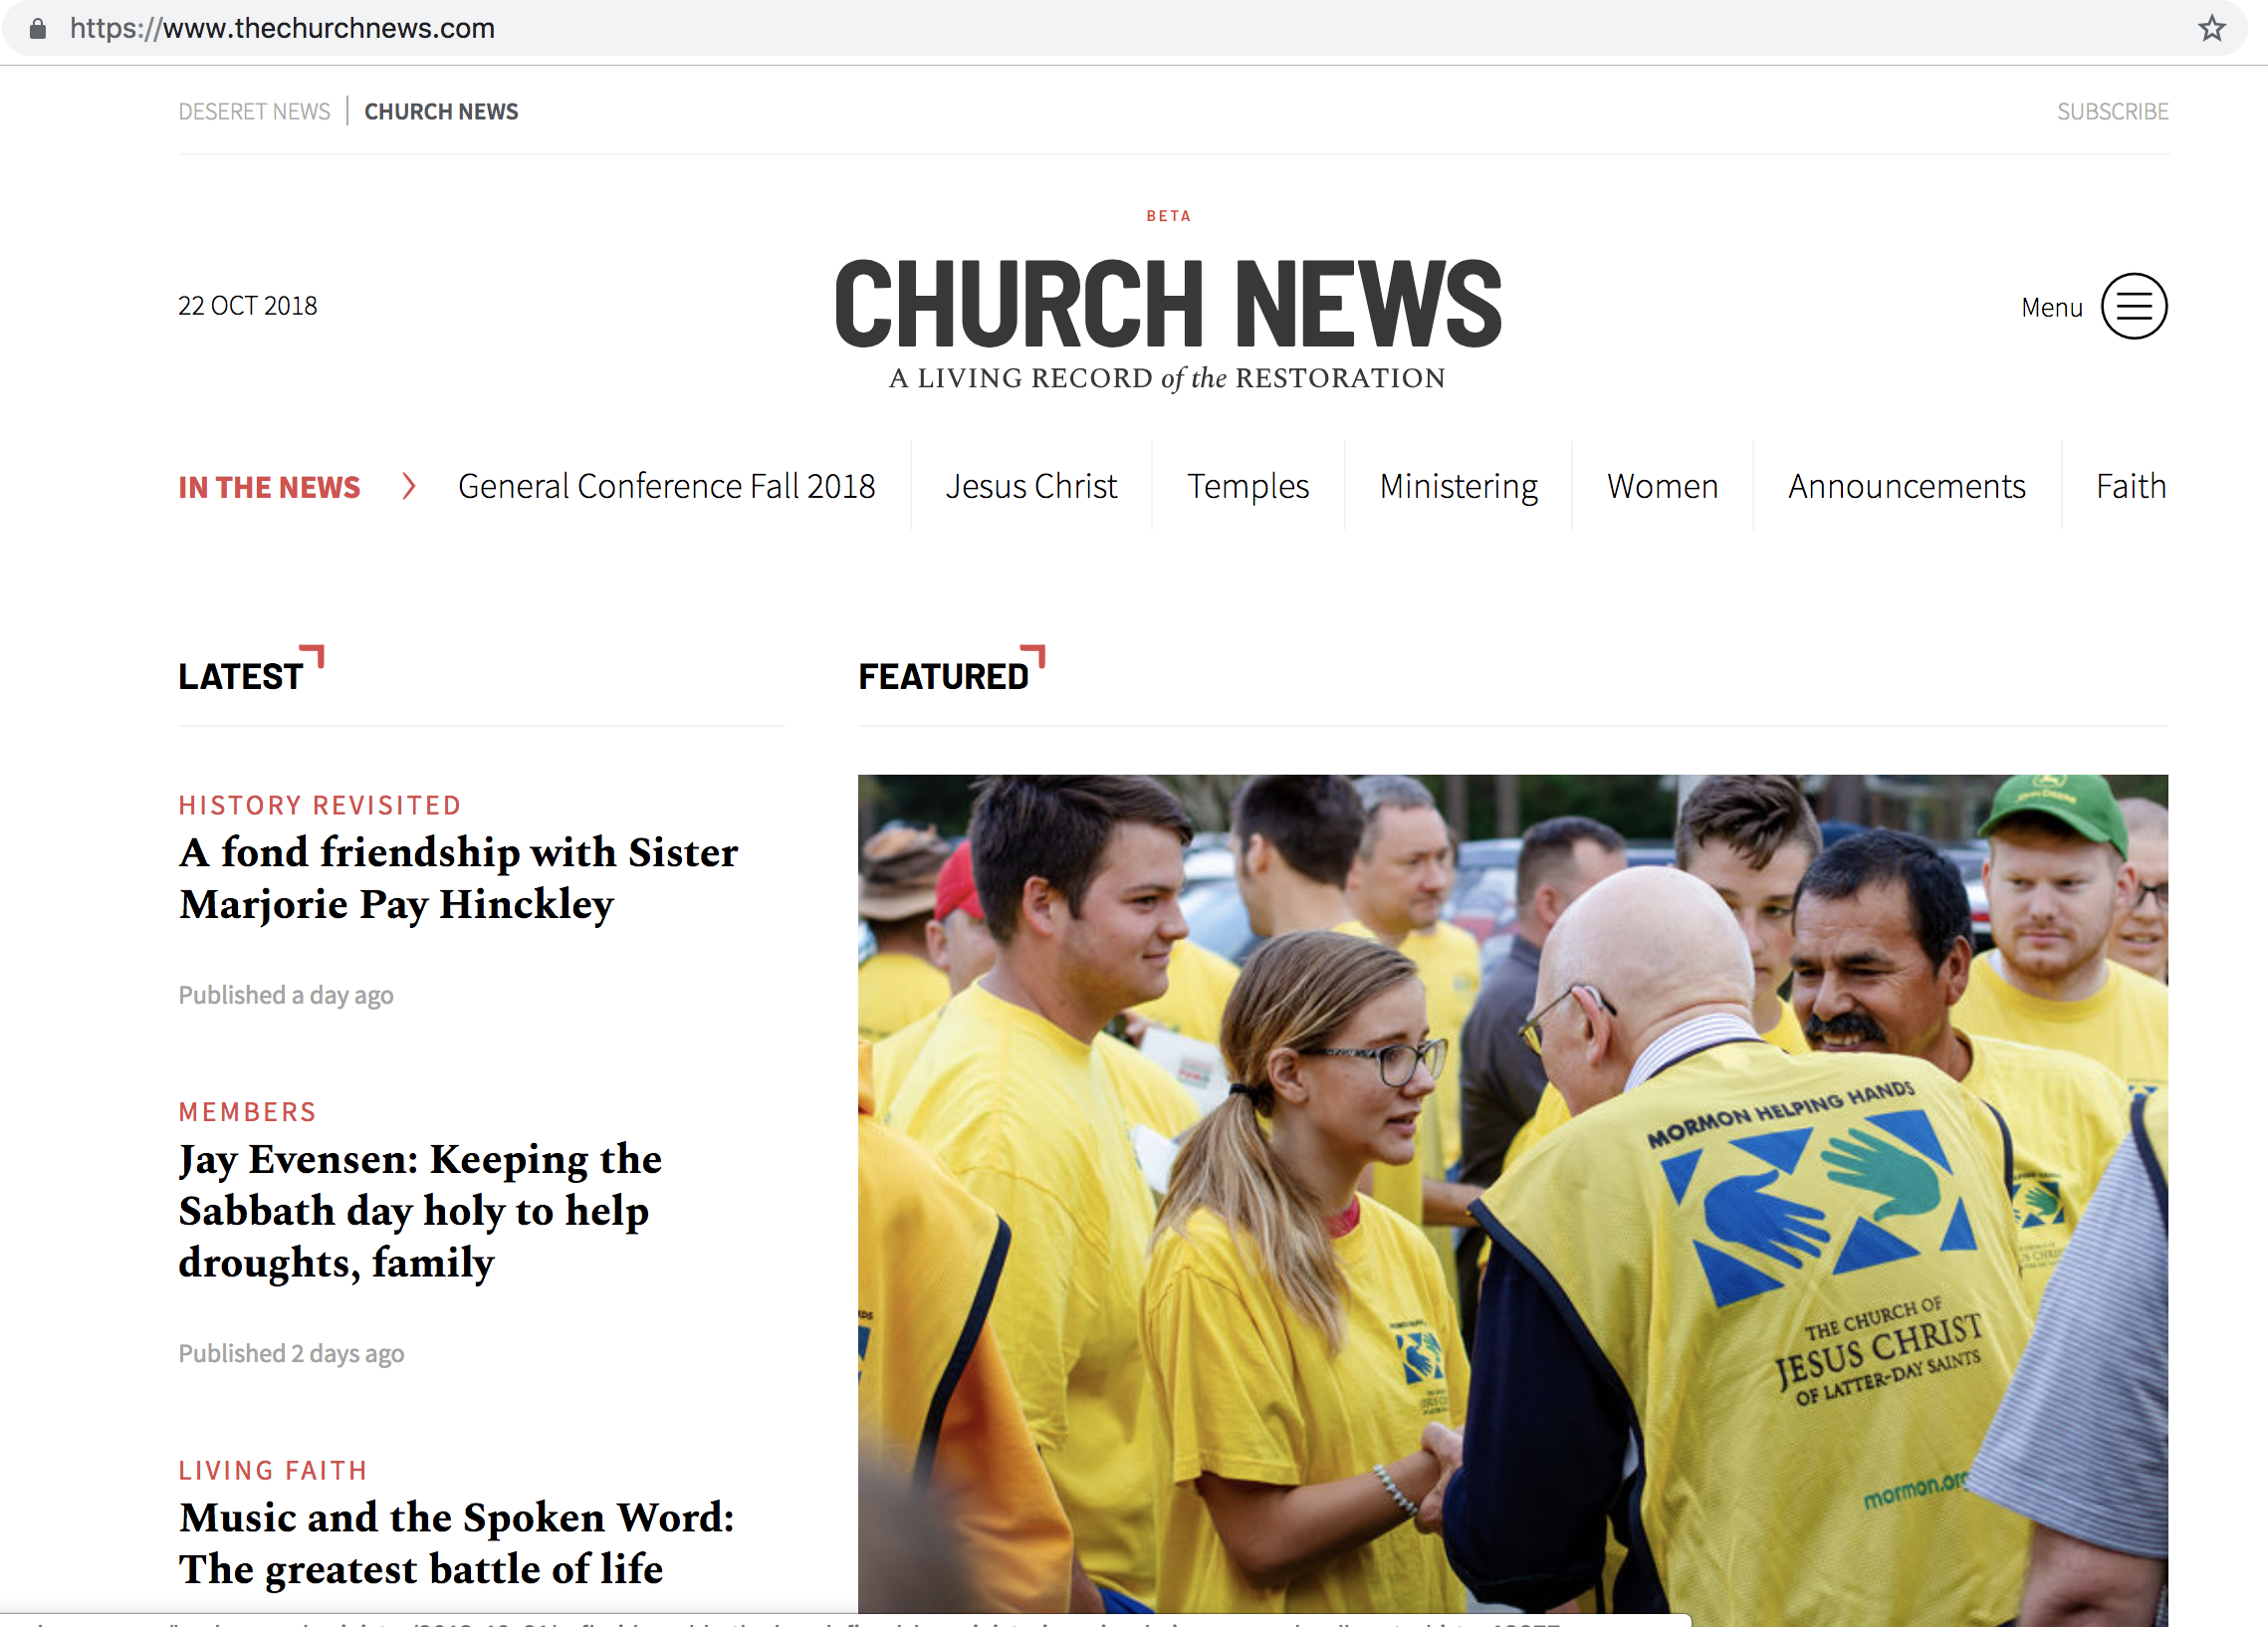 The Church News has updated its web address and online presence to more accurately align with the full name of the Church.